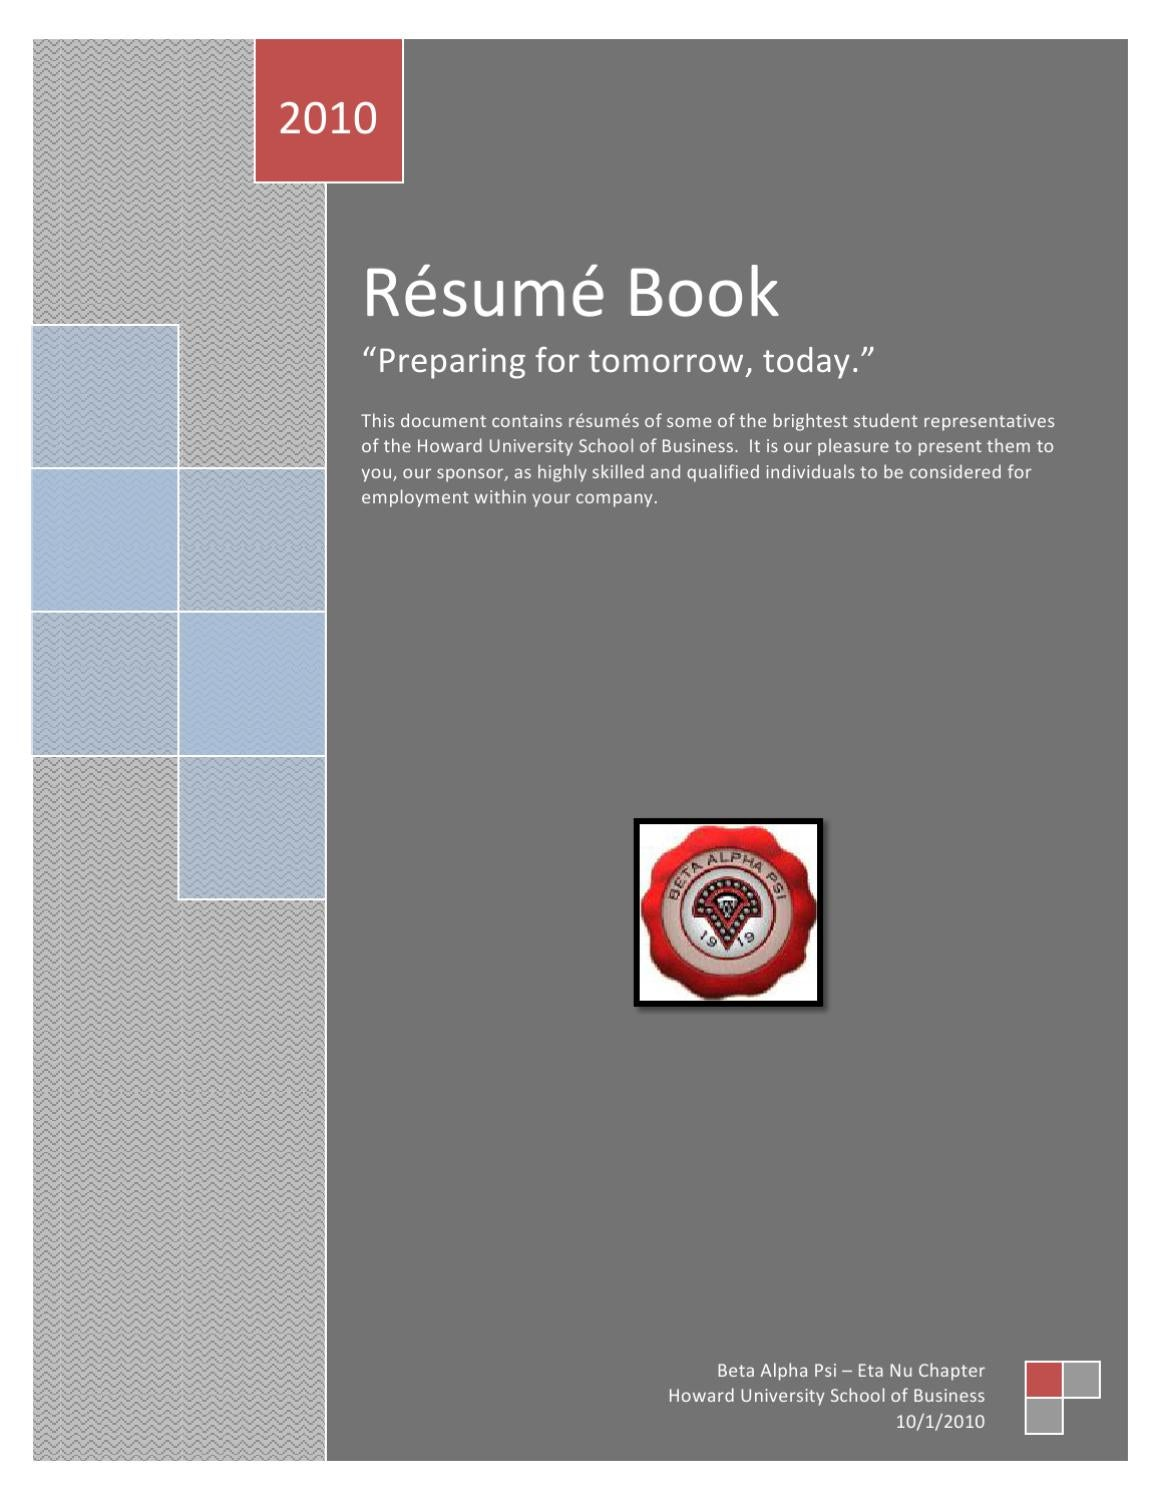 Resume Book 2010 by The Hilltop - issuu